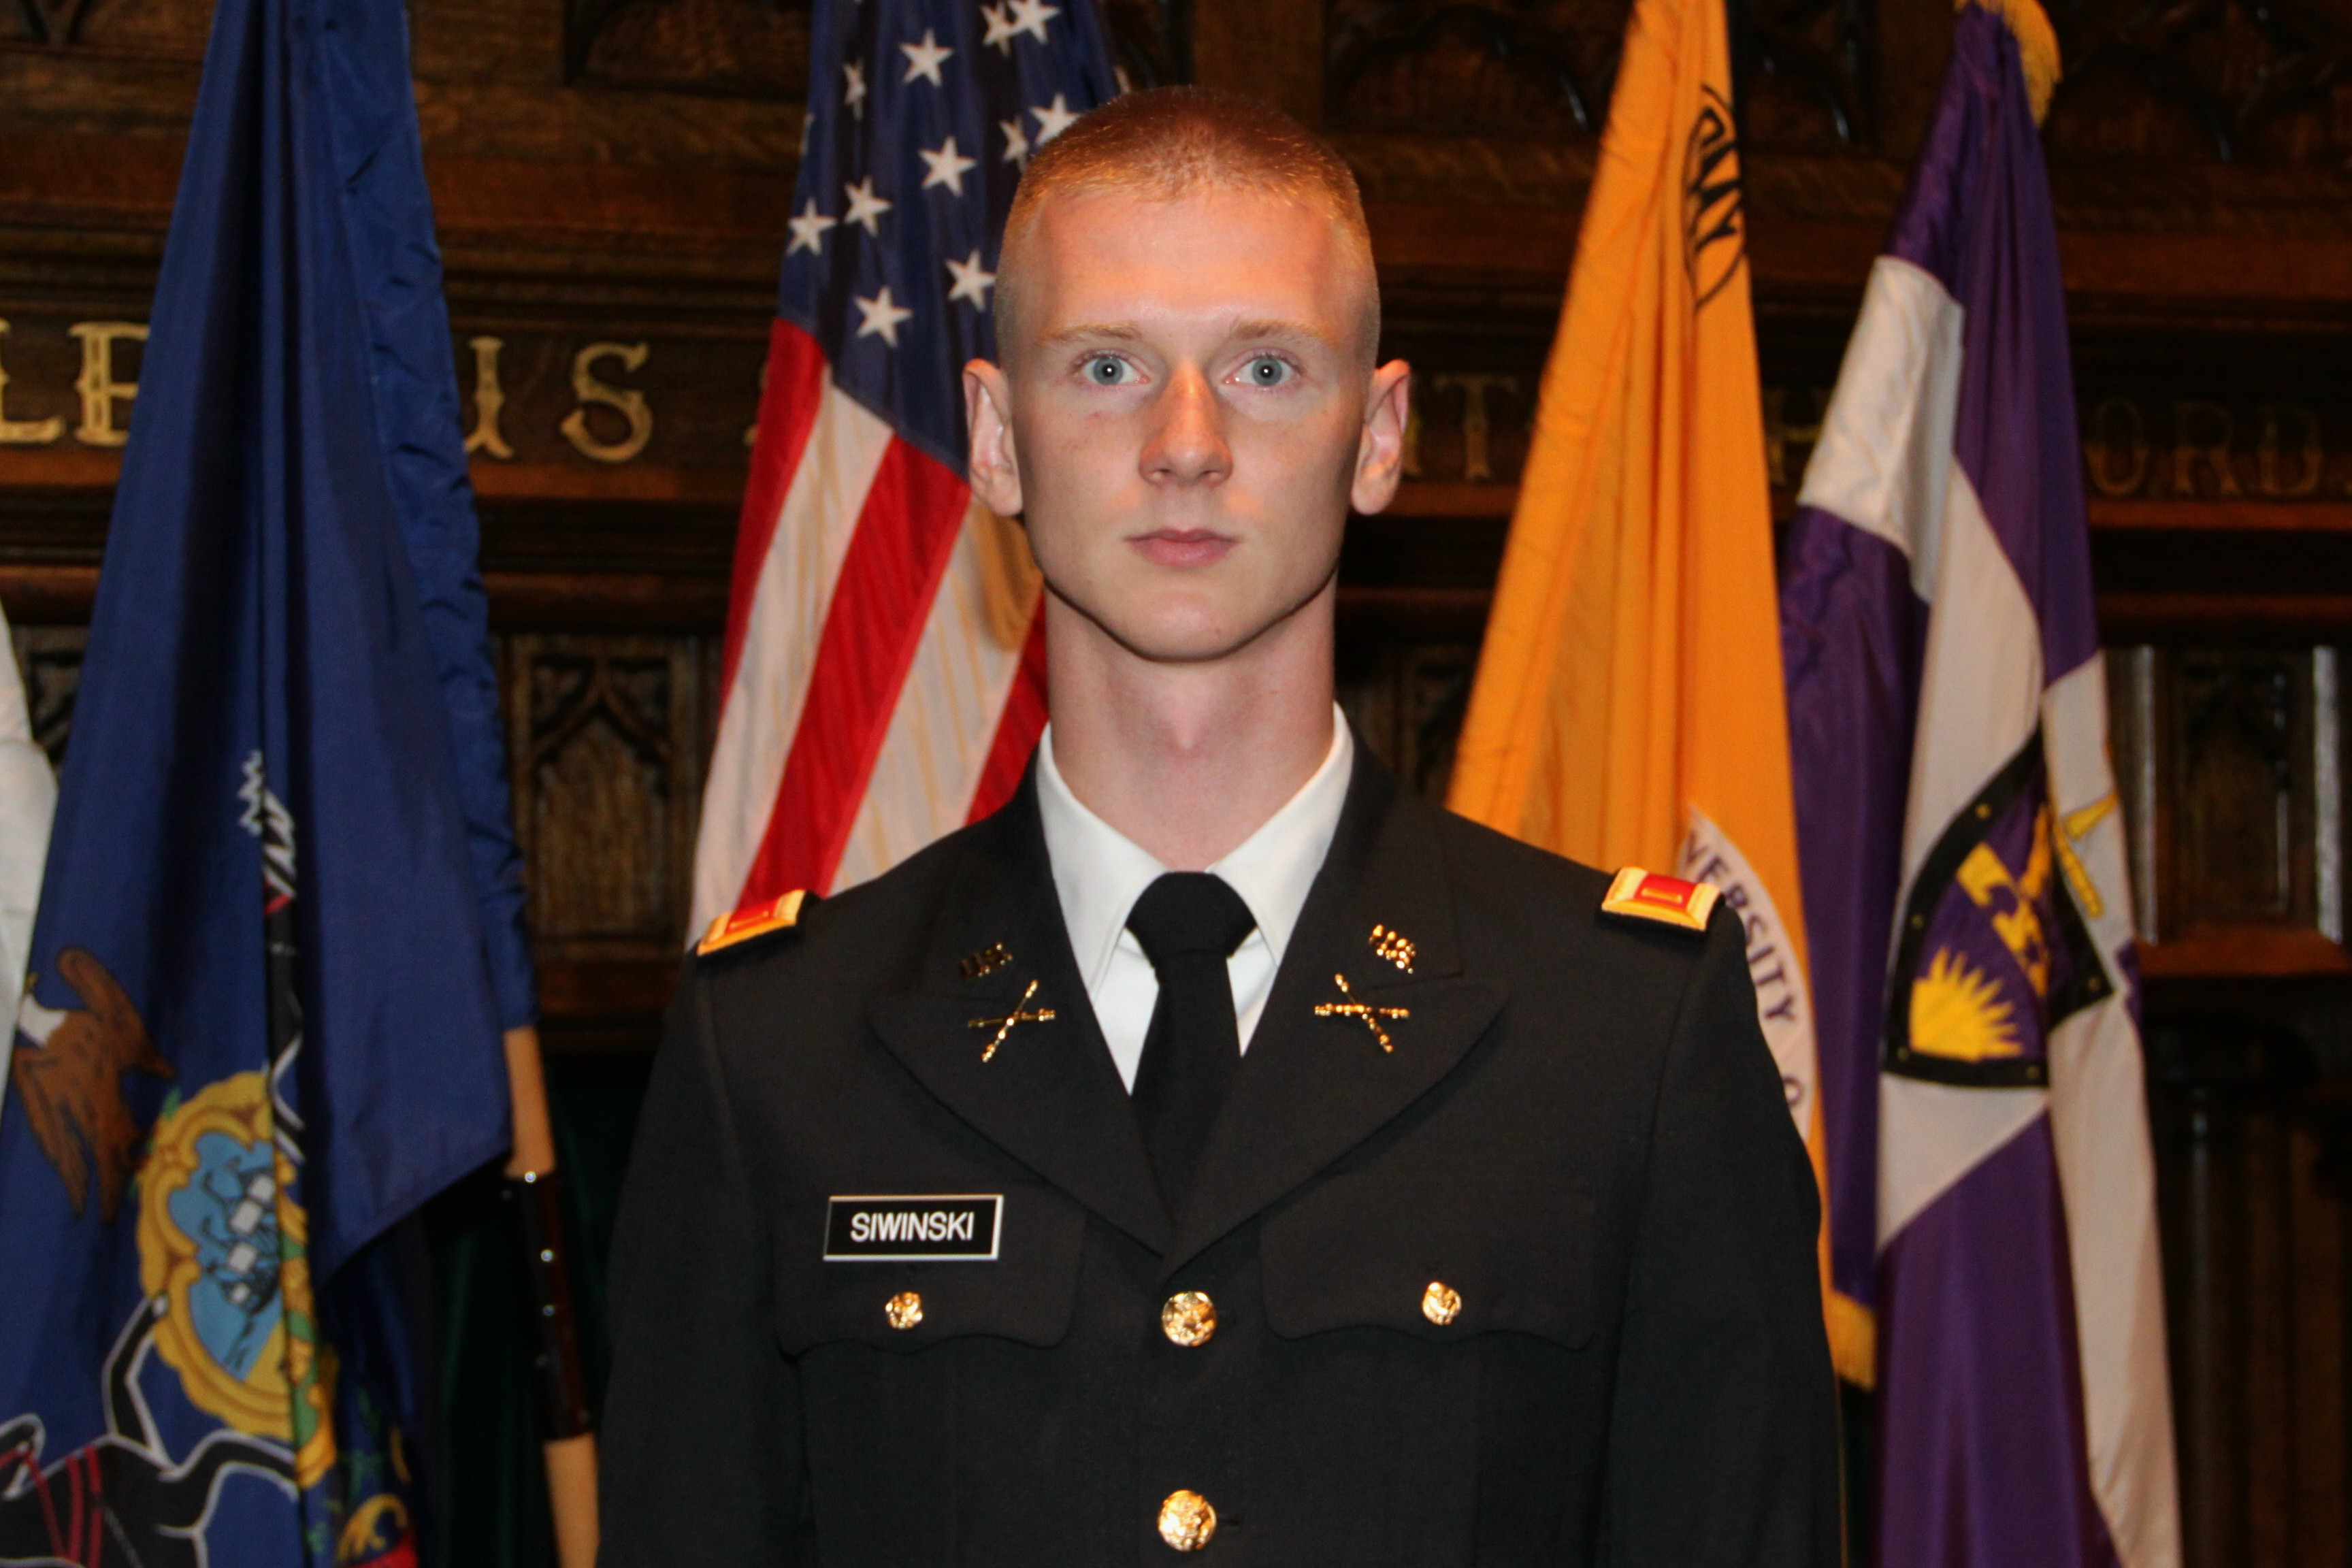 Stephen Siwinski of Towson Commissioned as Officer